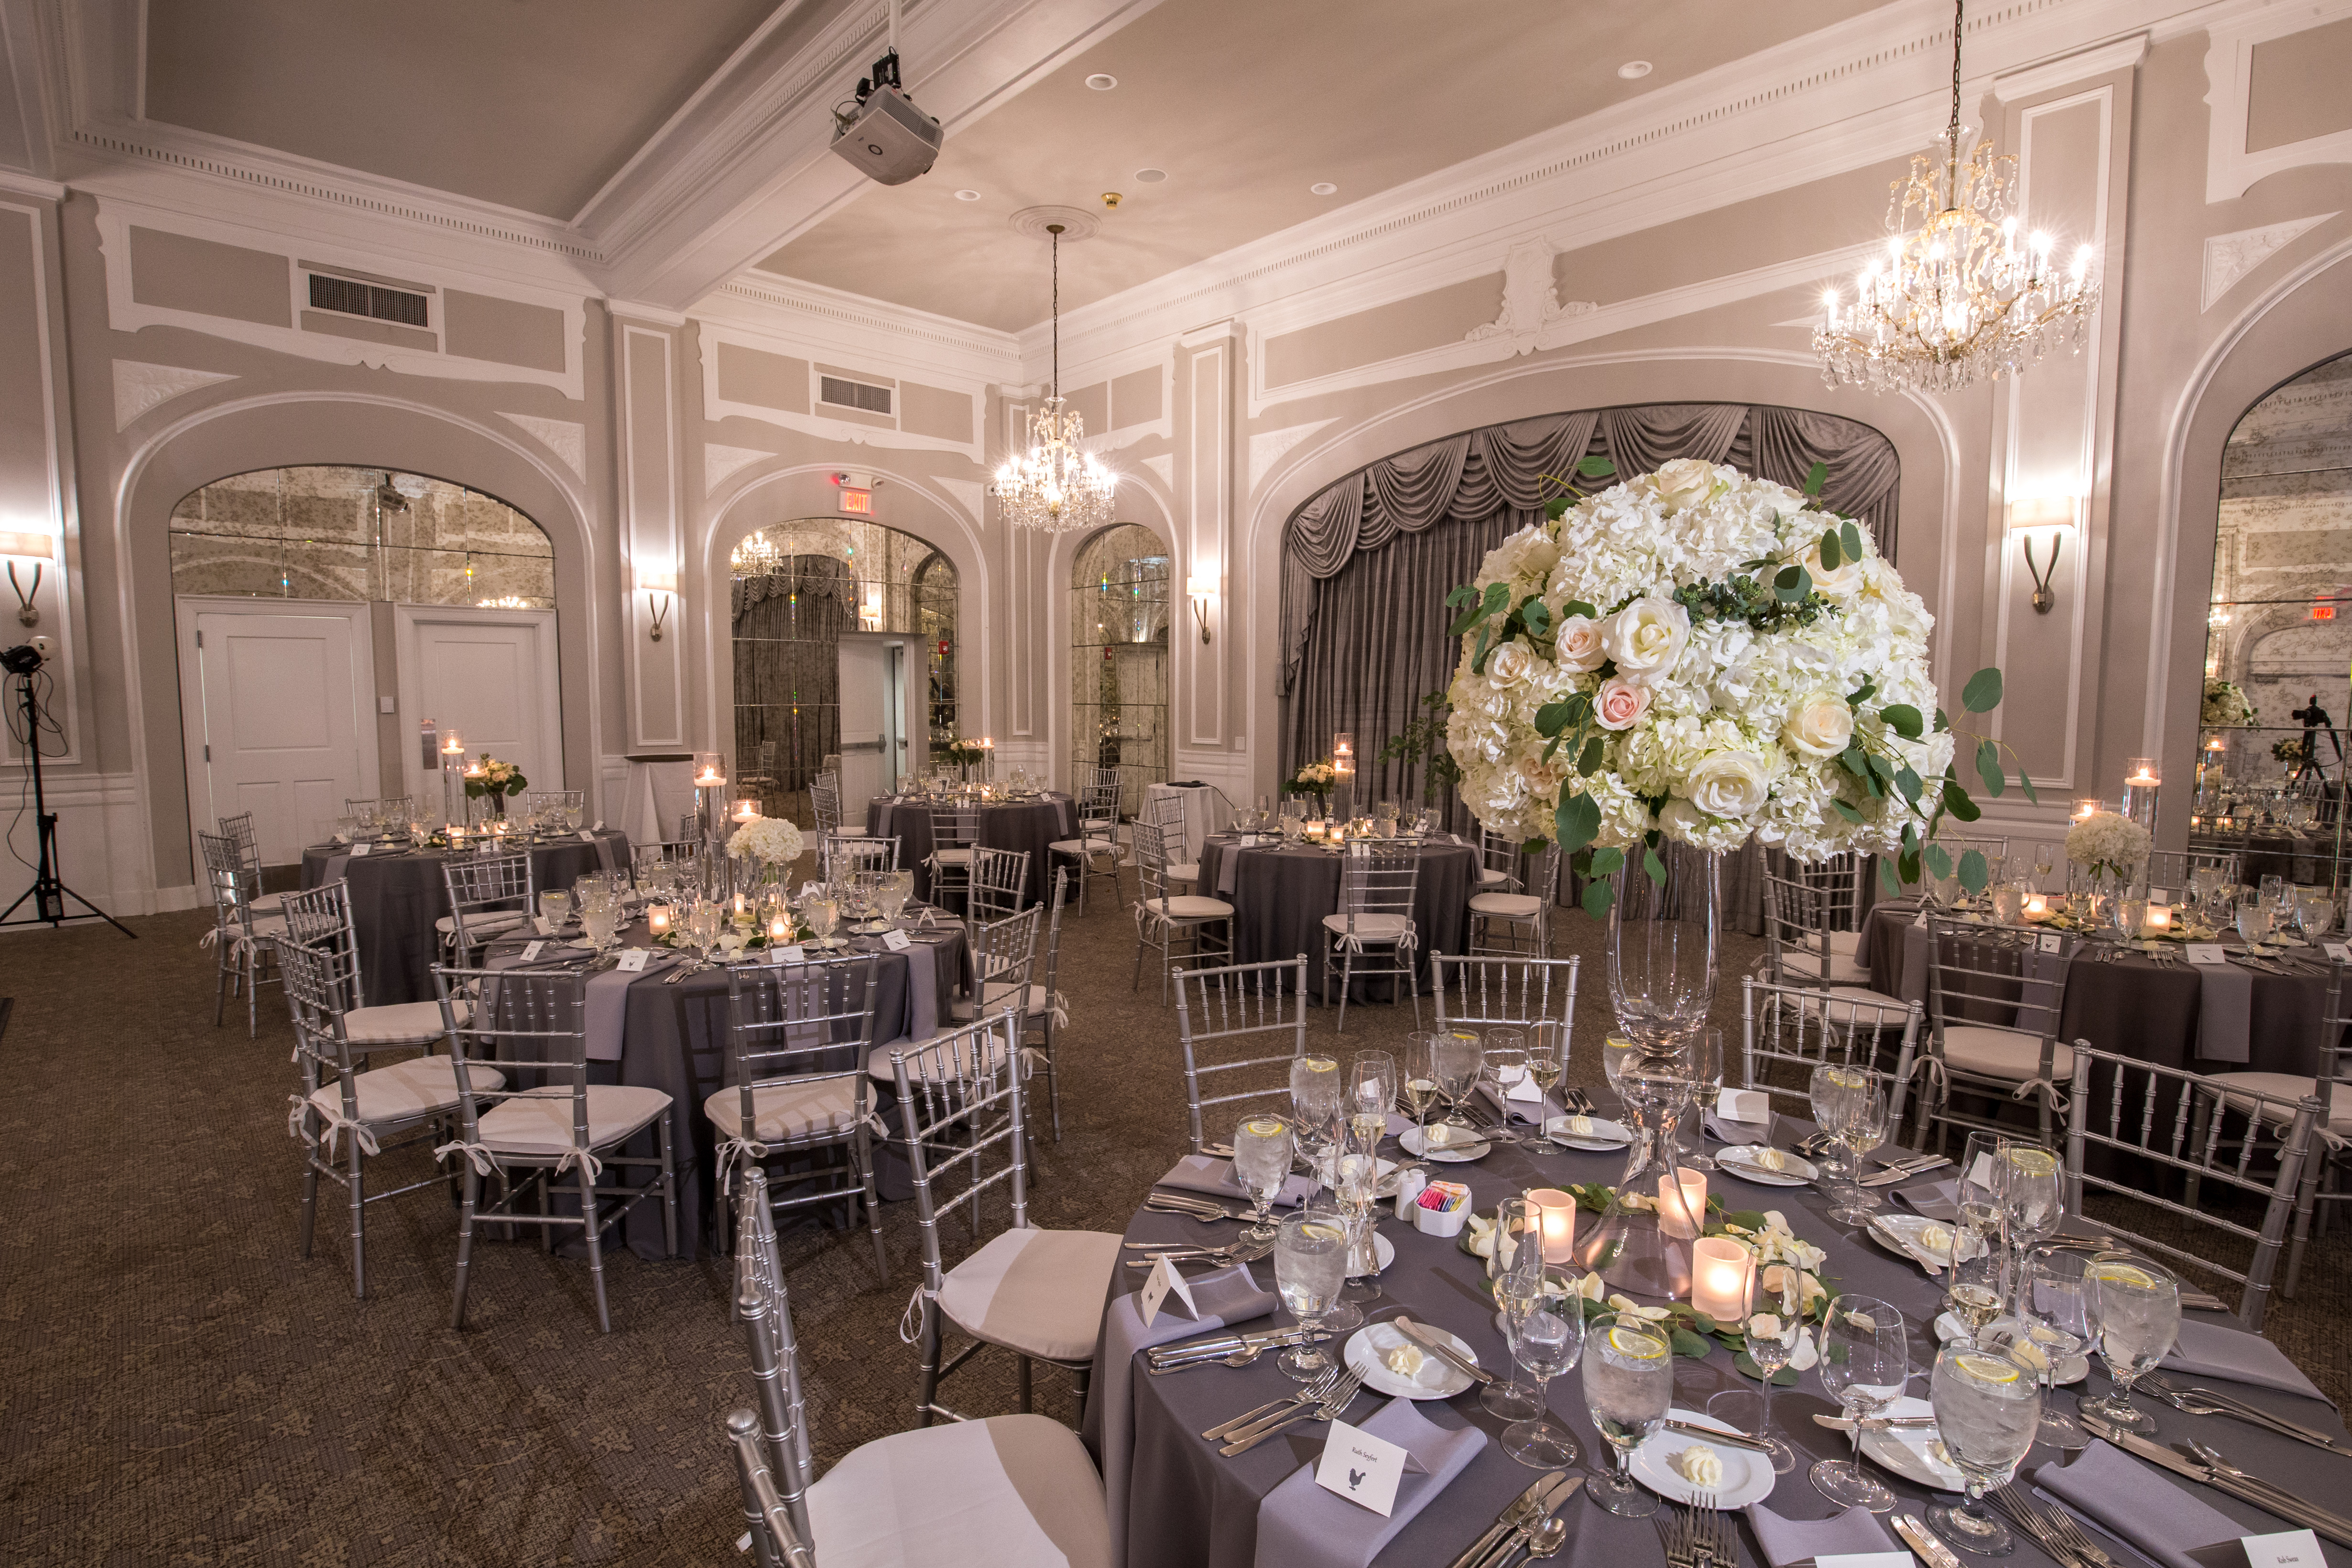 Lovely Silver Wedding at the Crystal Ballroom - LaCour Images